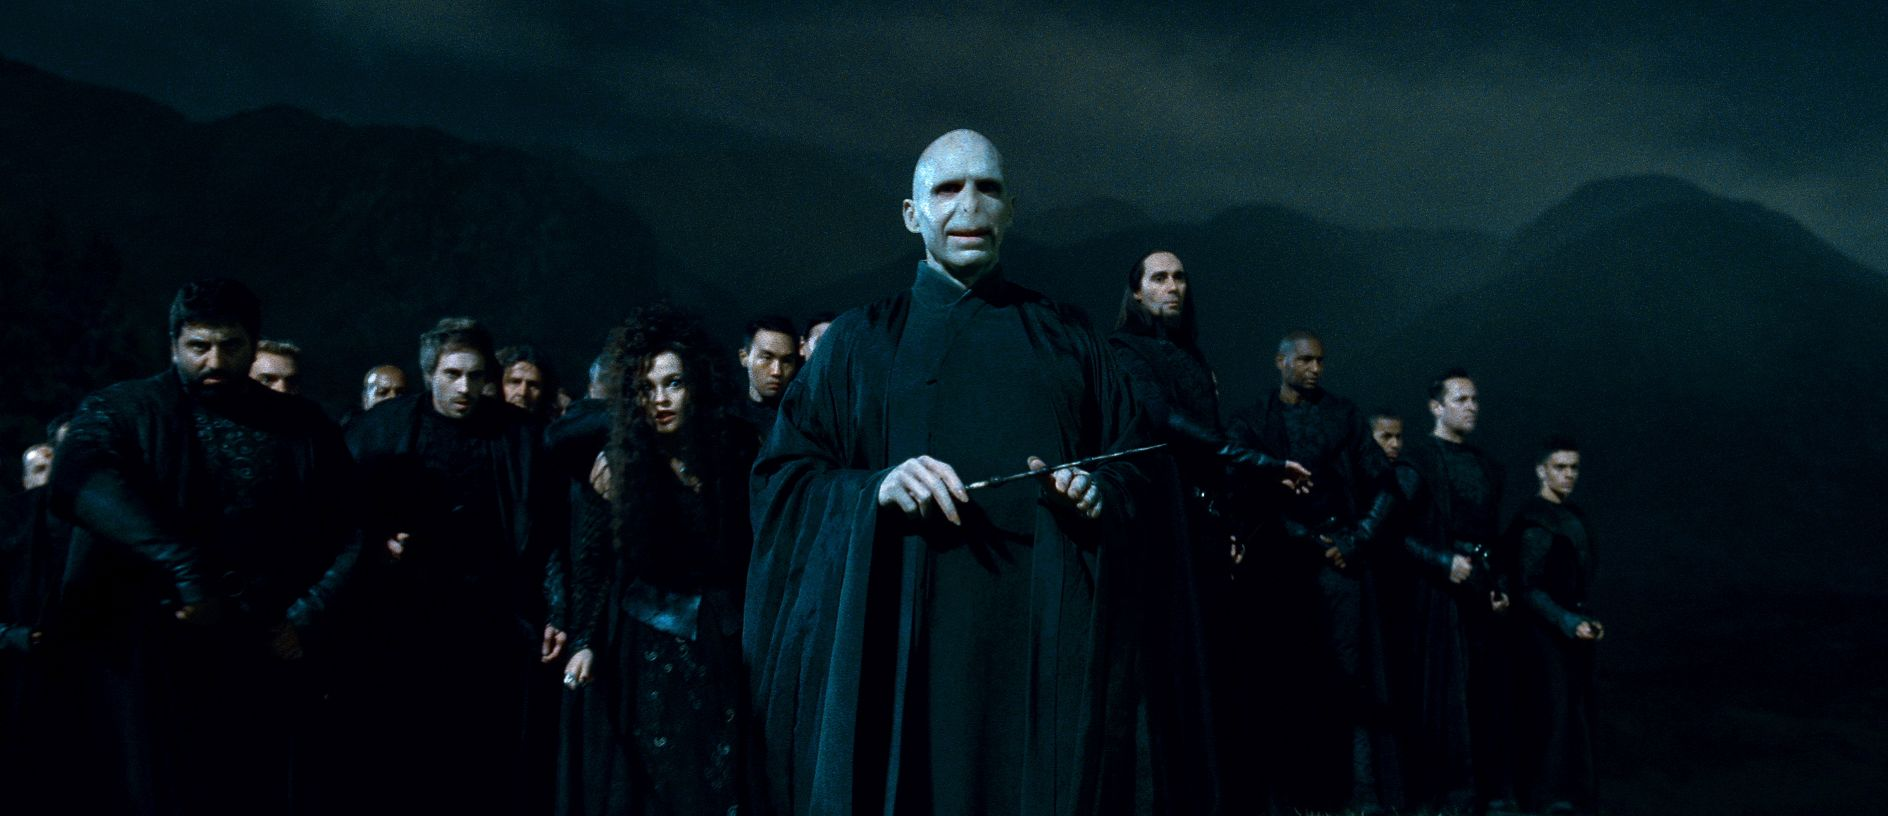 Harry Potter and the Deathly Hallows - Part 2 Images ...